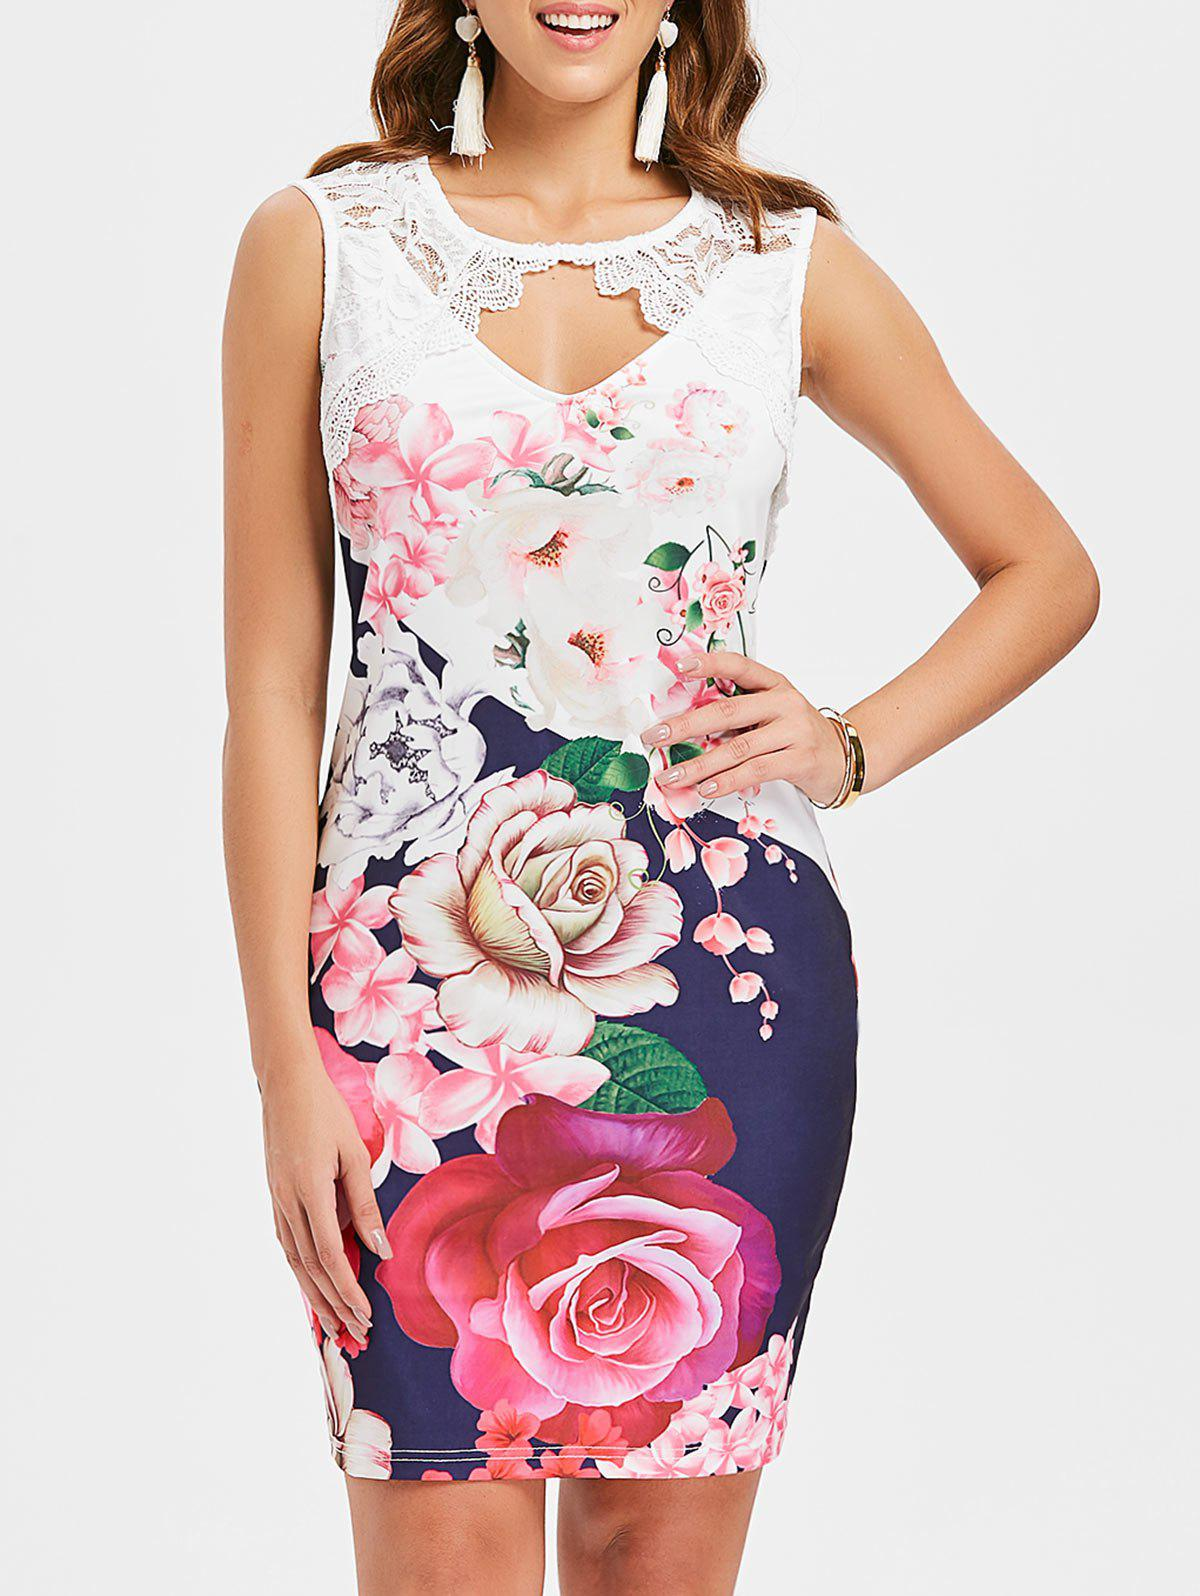 Lace Insert Floral Cut Out Bodycon Dress - multicolor A XL